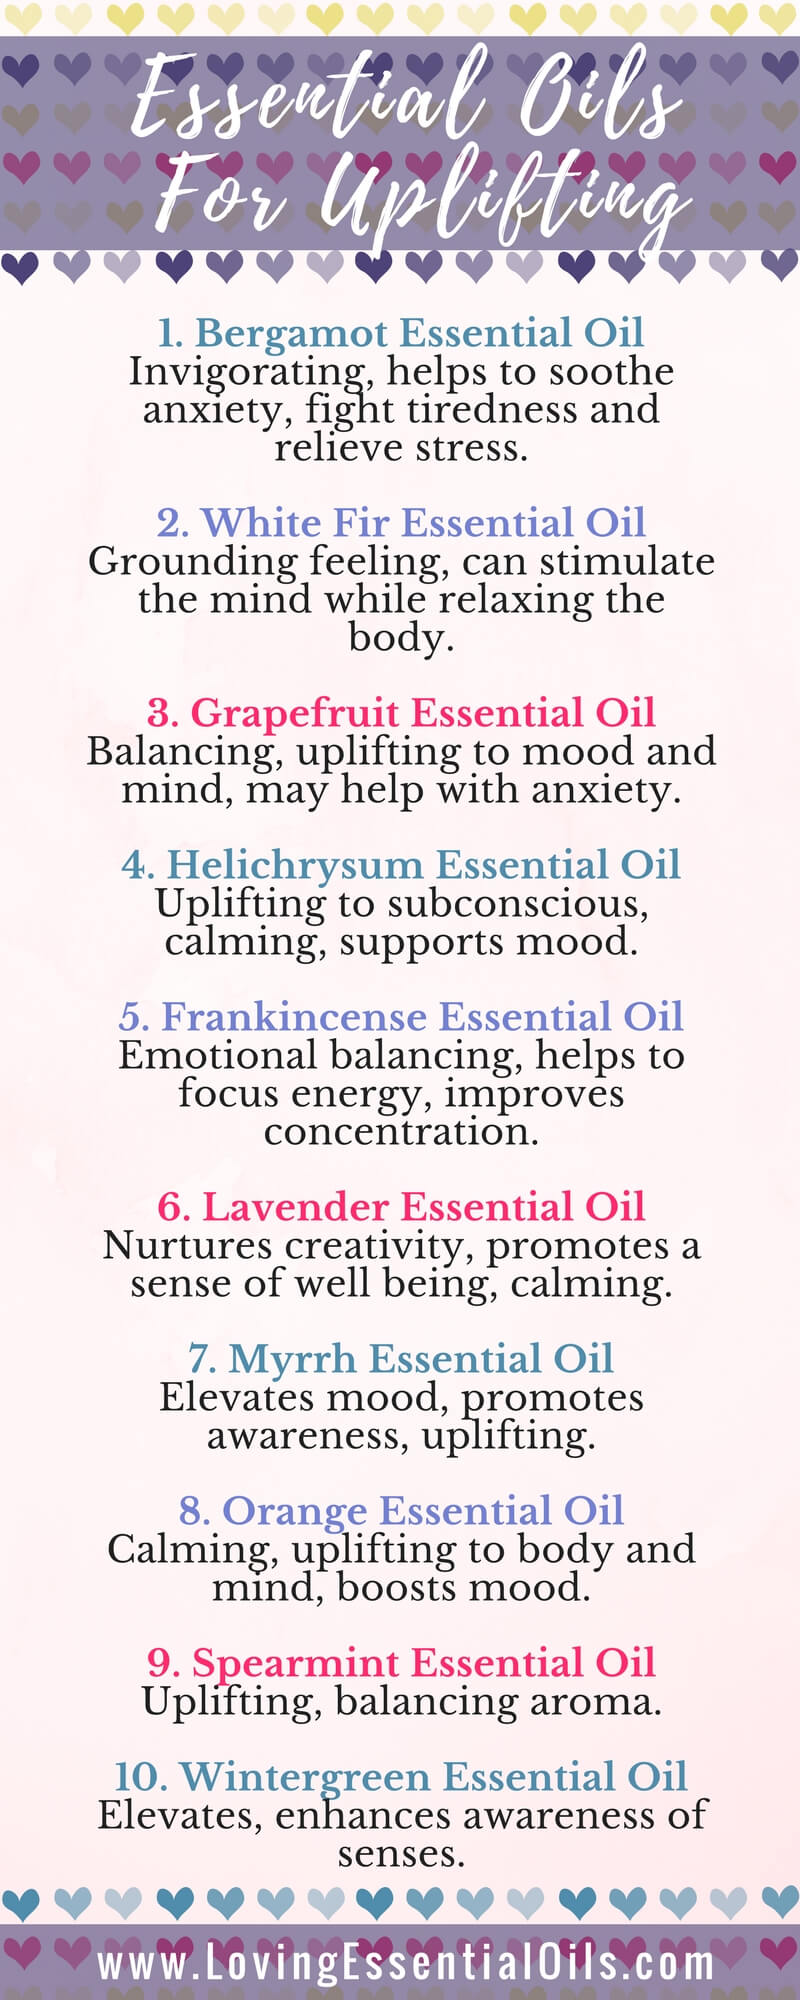 Top 10 Uplifting Essential Oils With Diffuser Blends